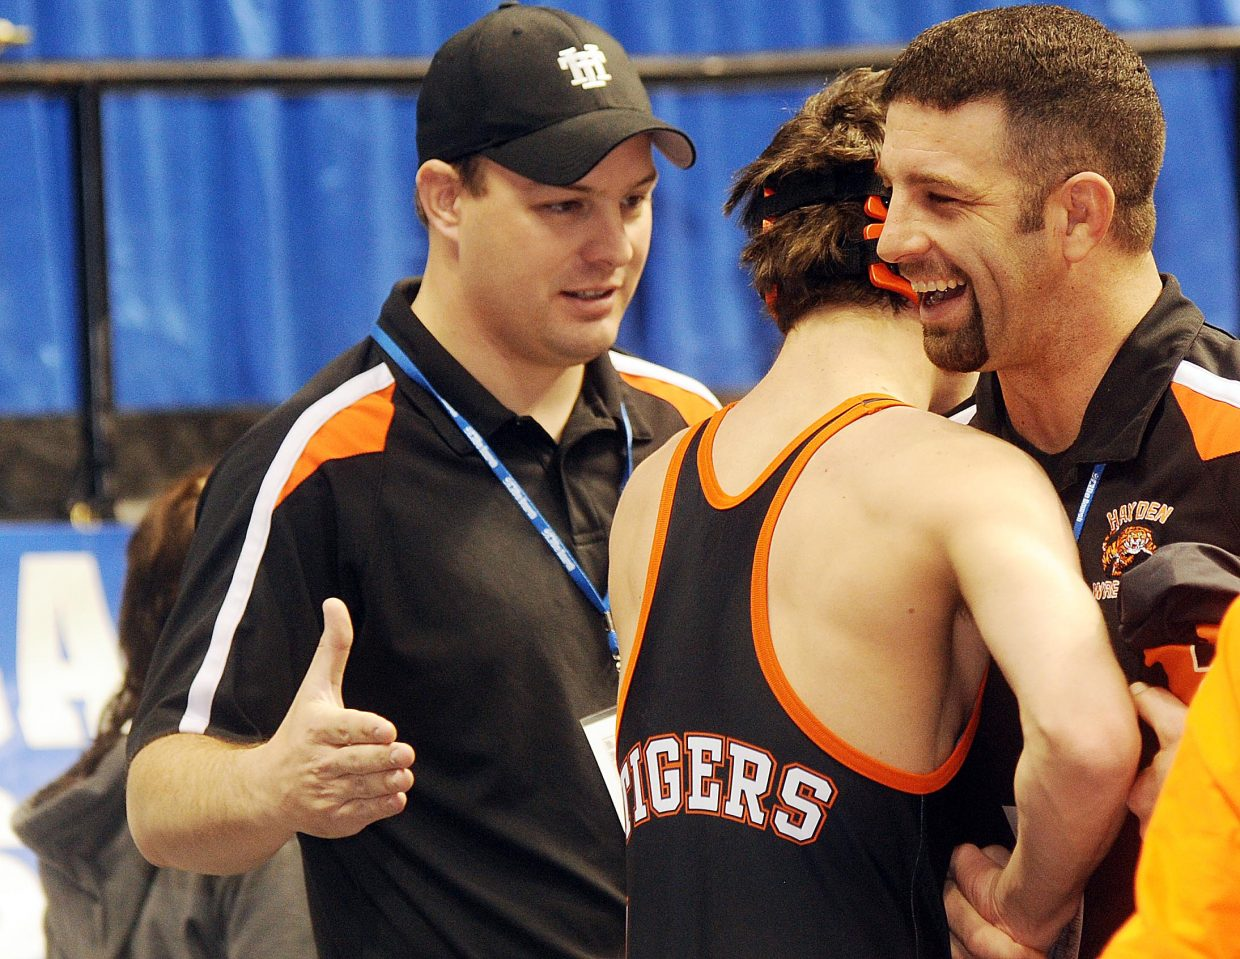 Hayden senior Scott Armbruster accepts congratulations from his coaches after winning his first match in four years at the state wrestling tournament.